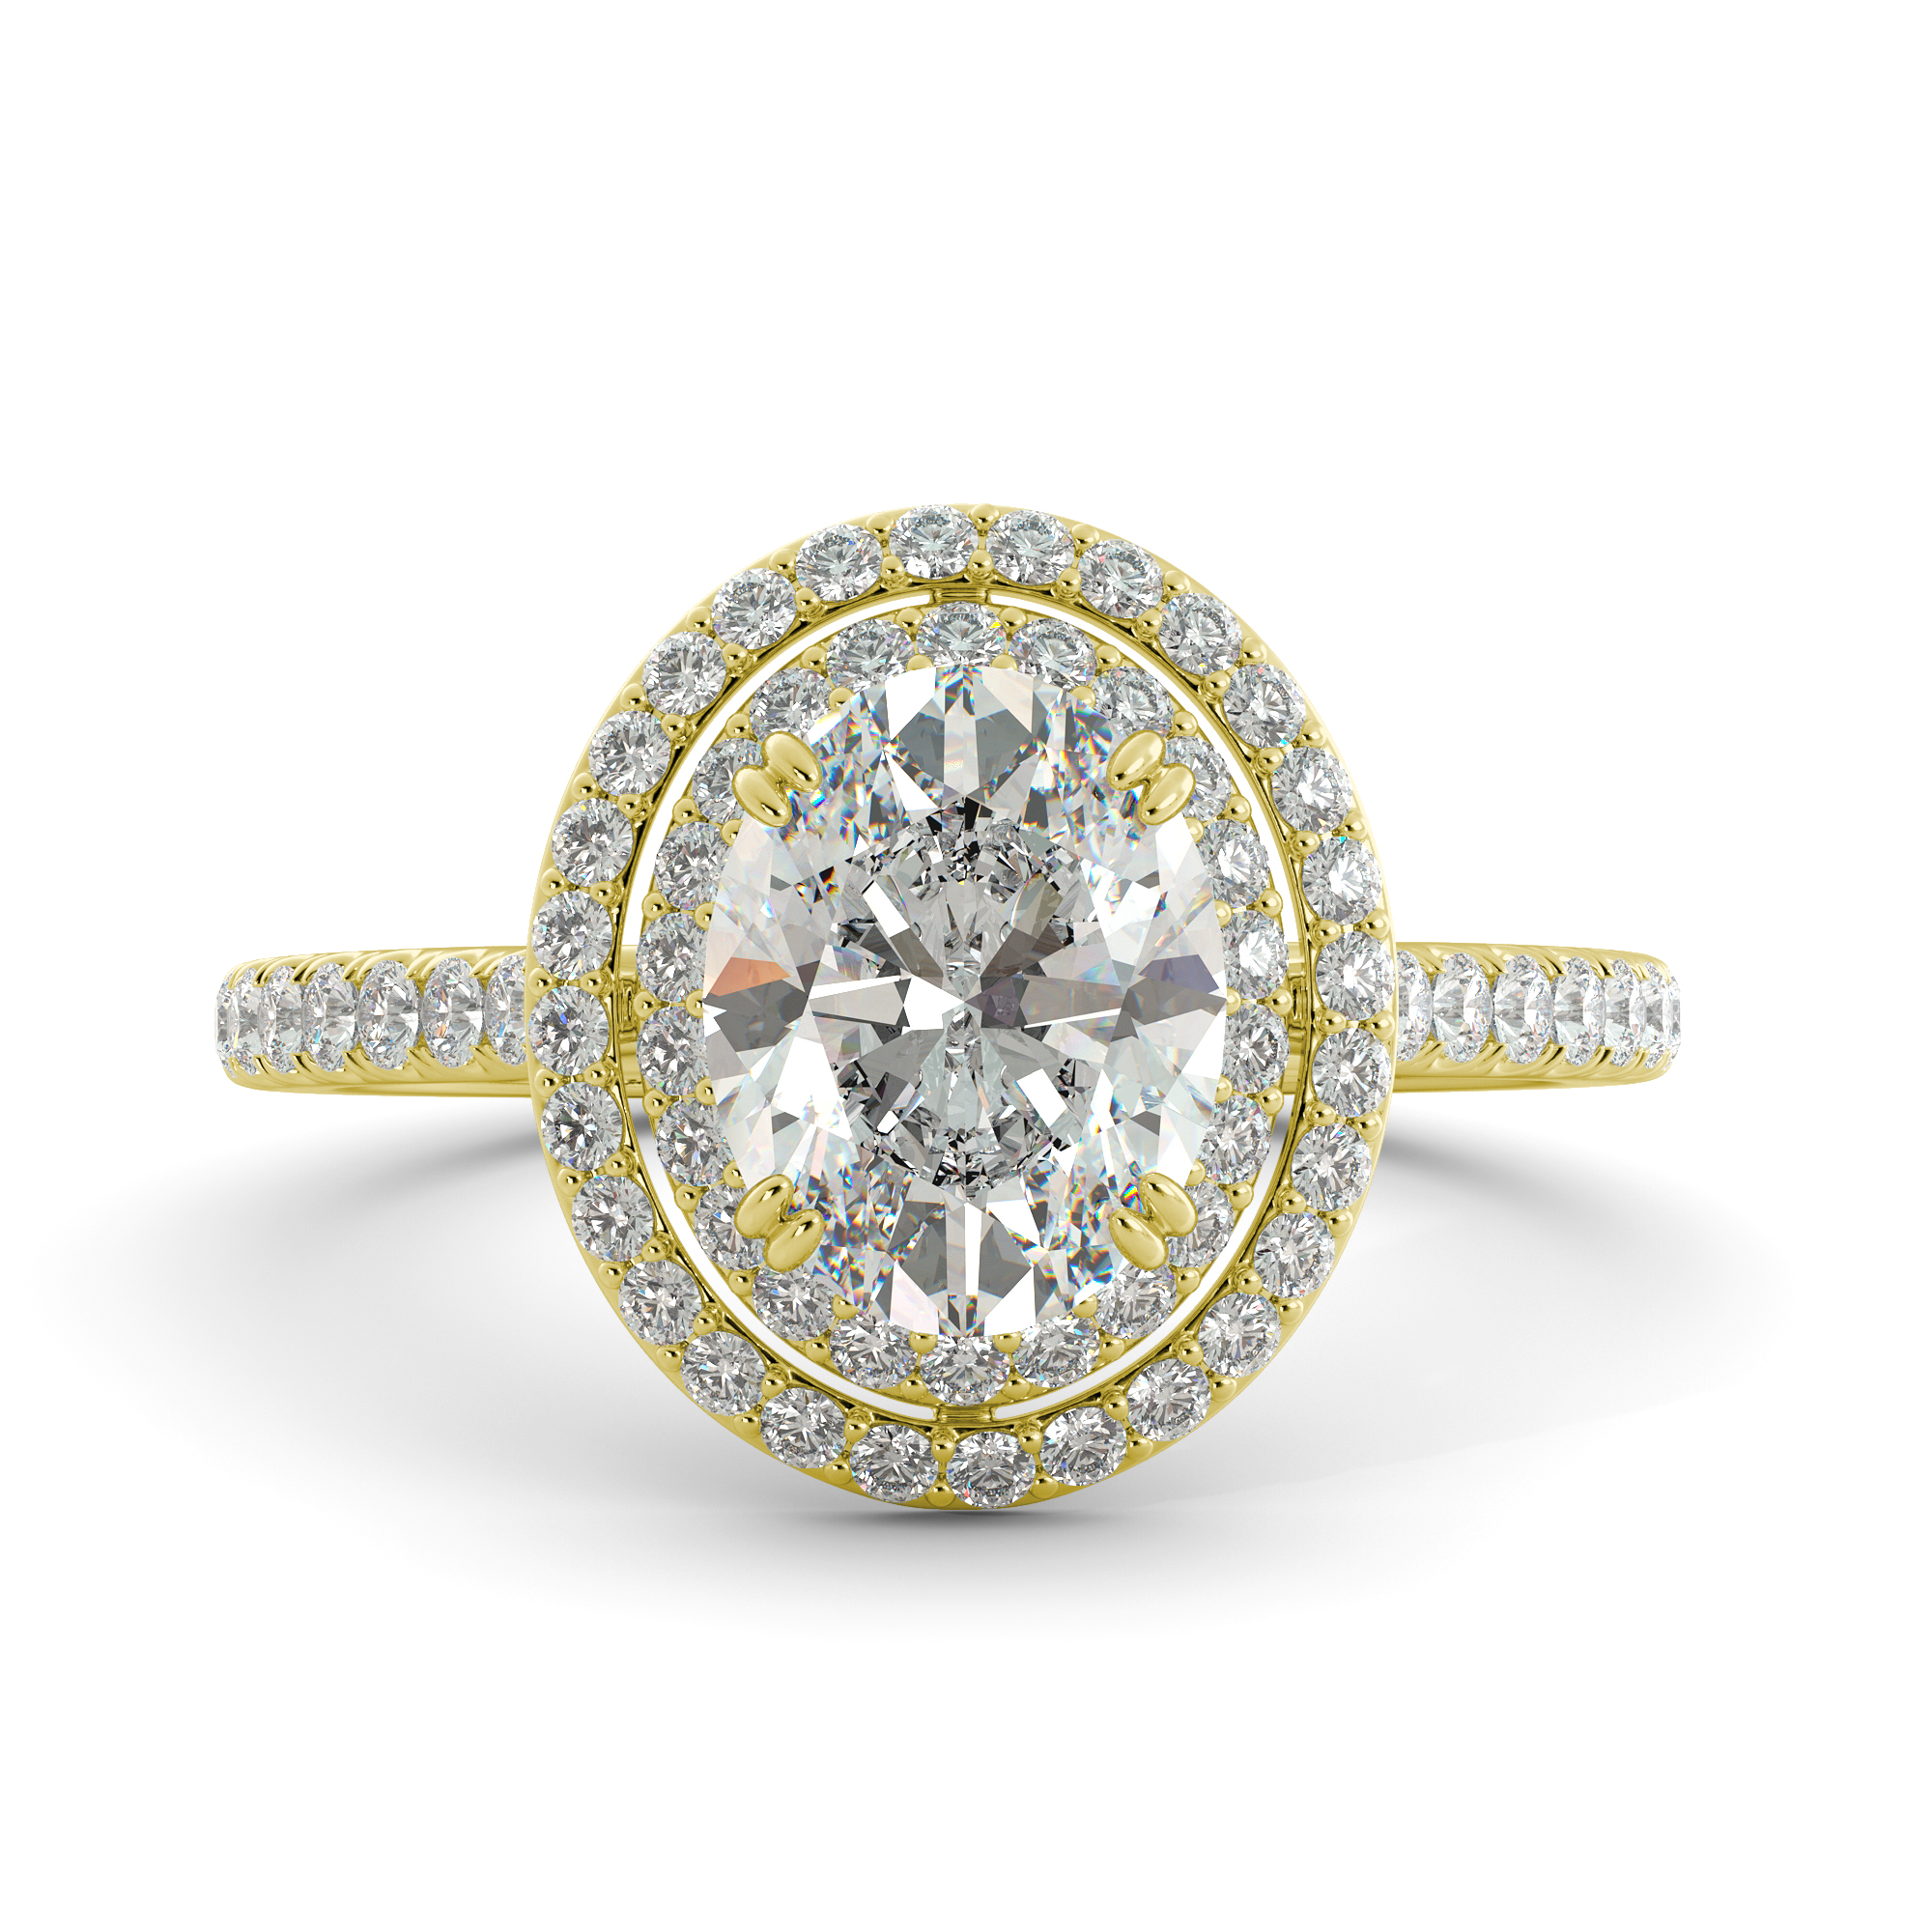 2.92 ct Oval Cut One Moissanite & Diamond Halo Engagement Ring 14k Yellow Gold by J&H Jewelers